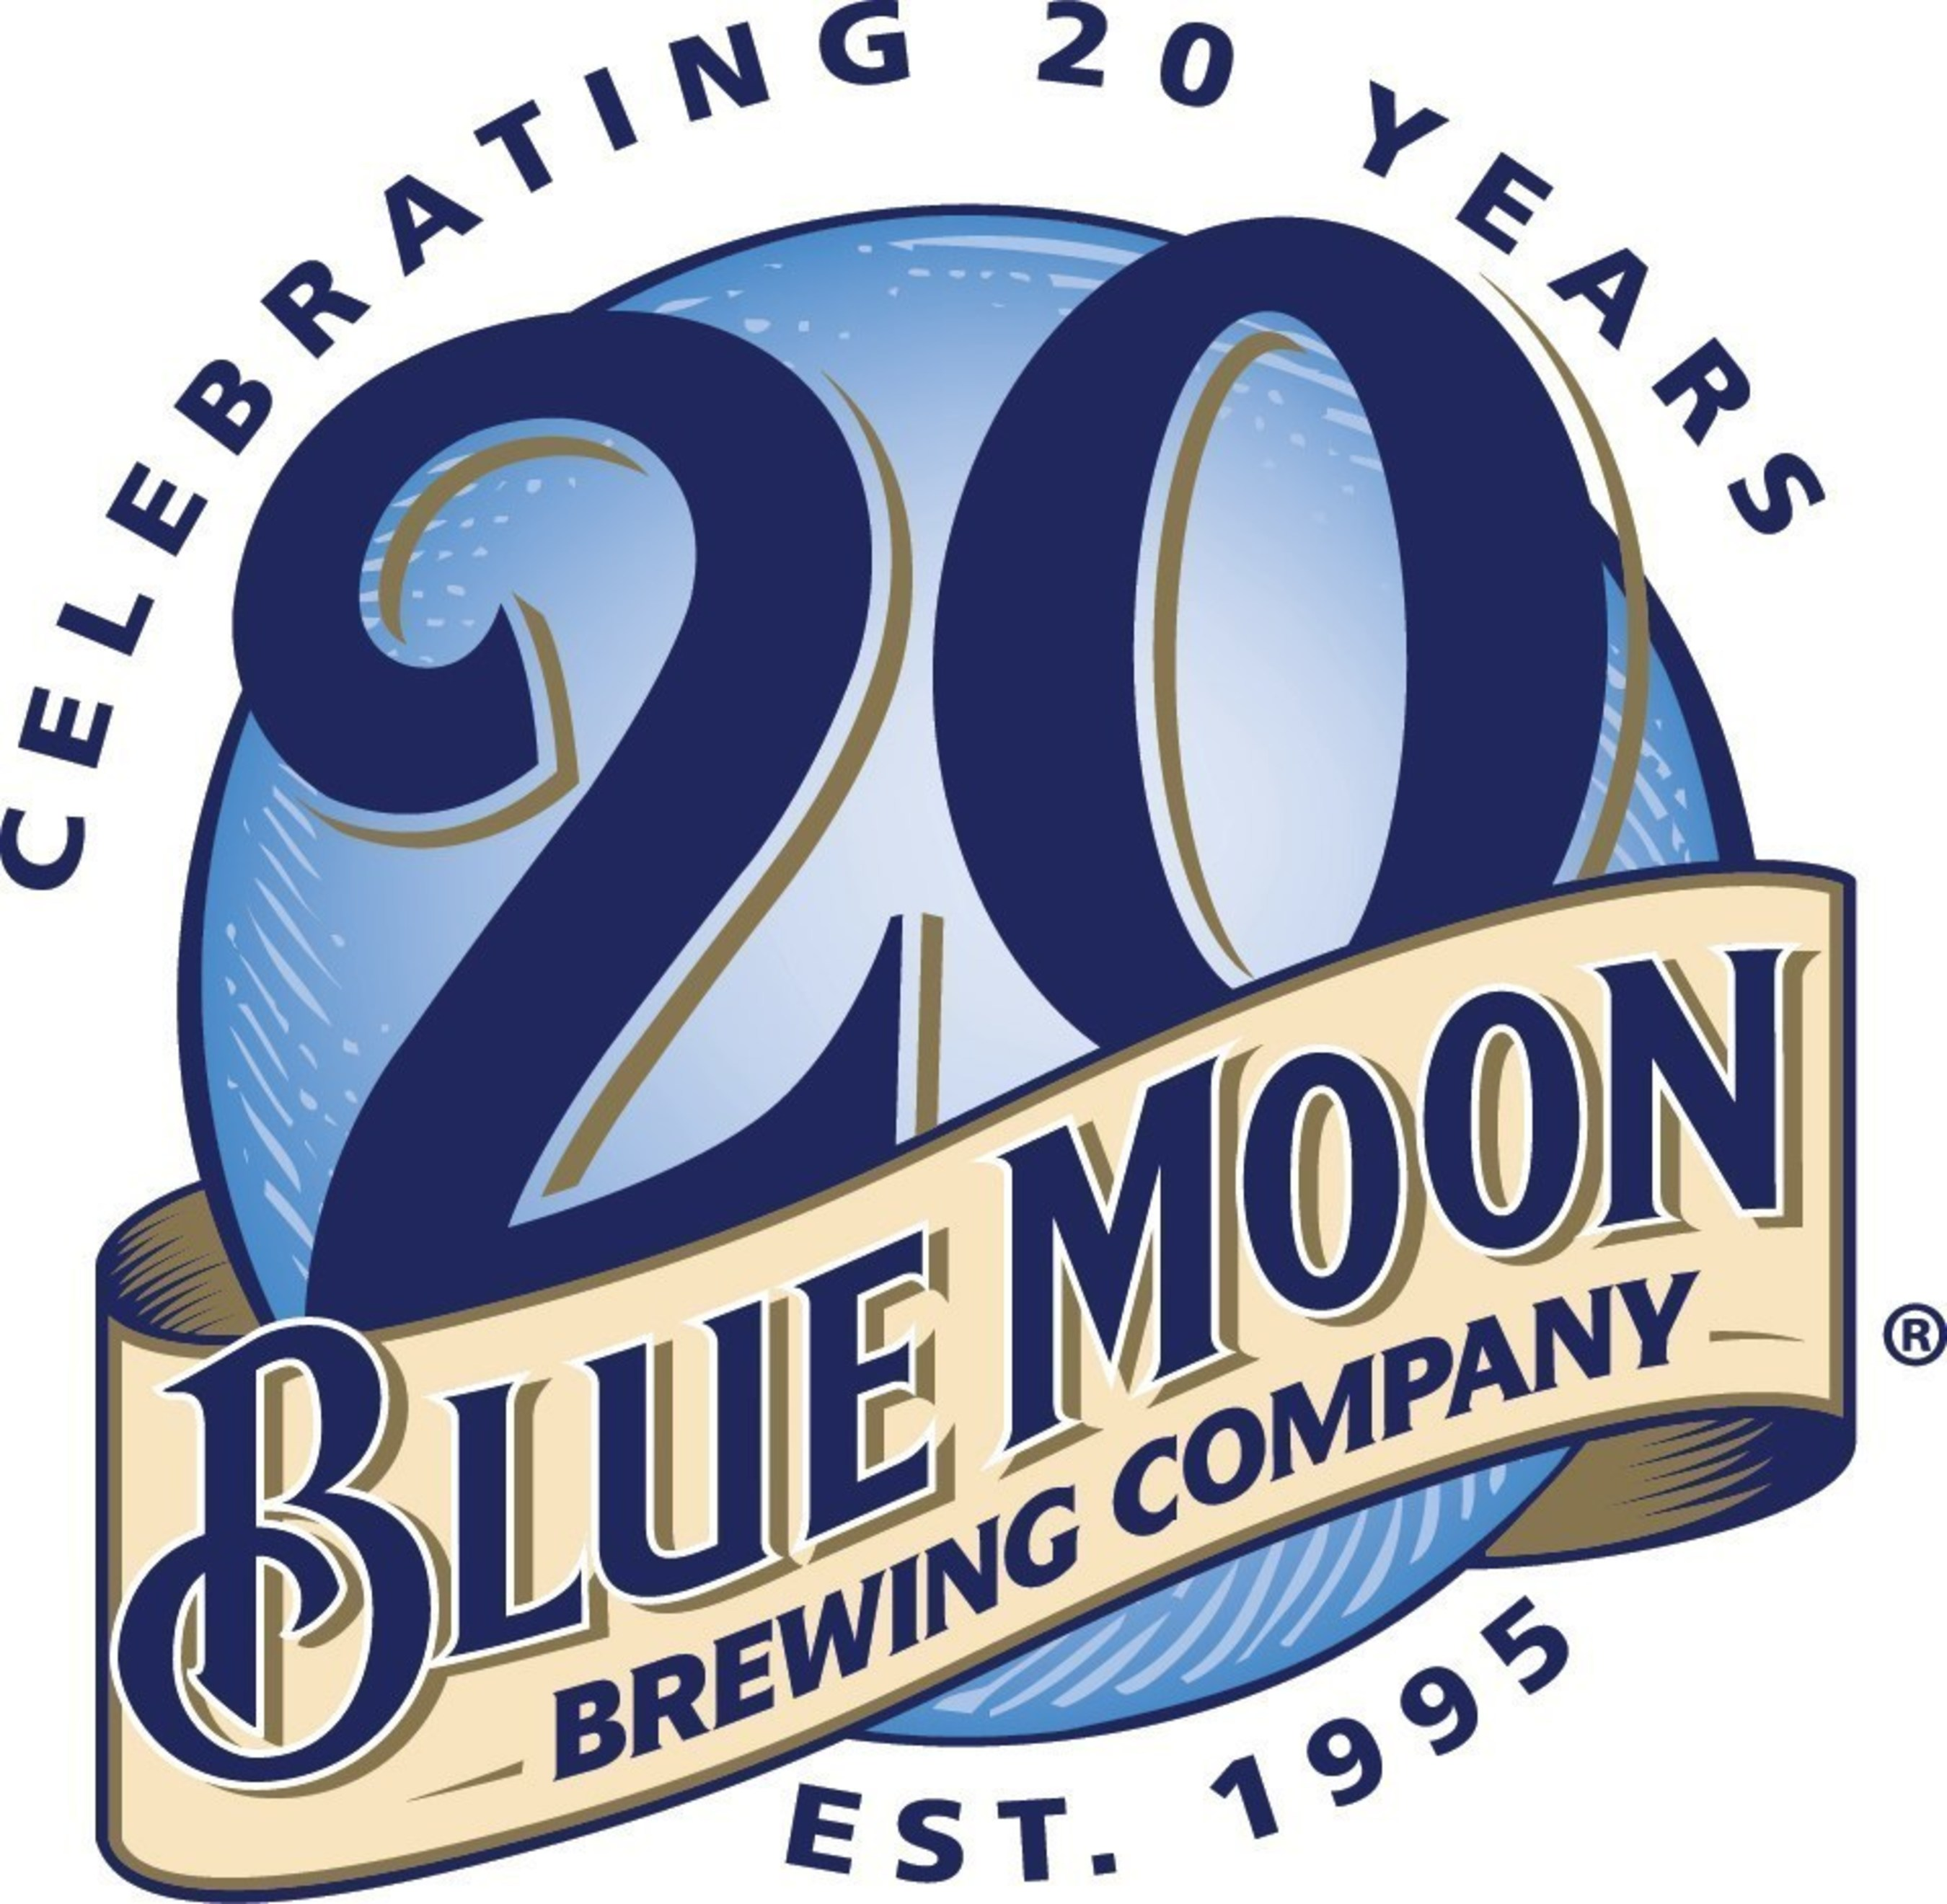 BLUE MOON BREWING COMPANY SPOTLIGHTS RISING ARTISTS THROUGH BOTTLE SERIES TRIBUTE